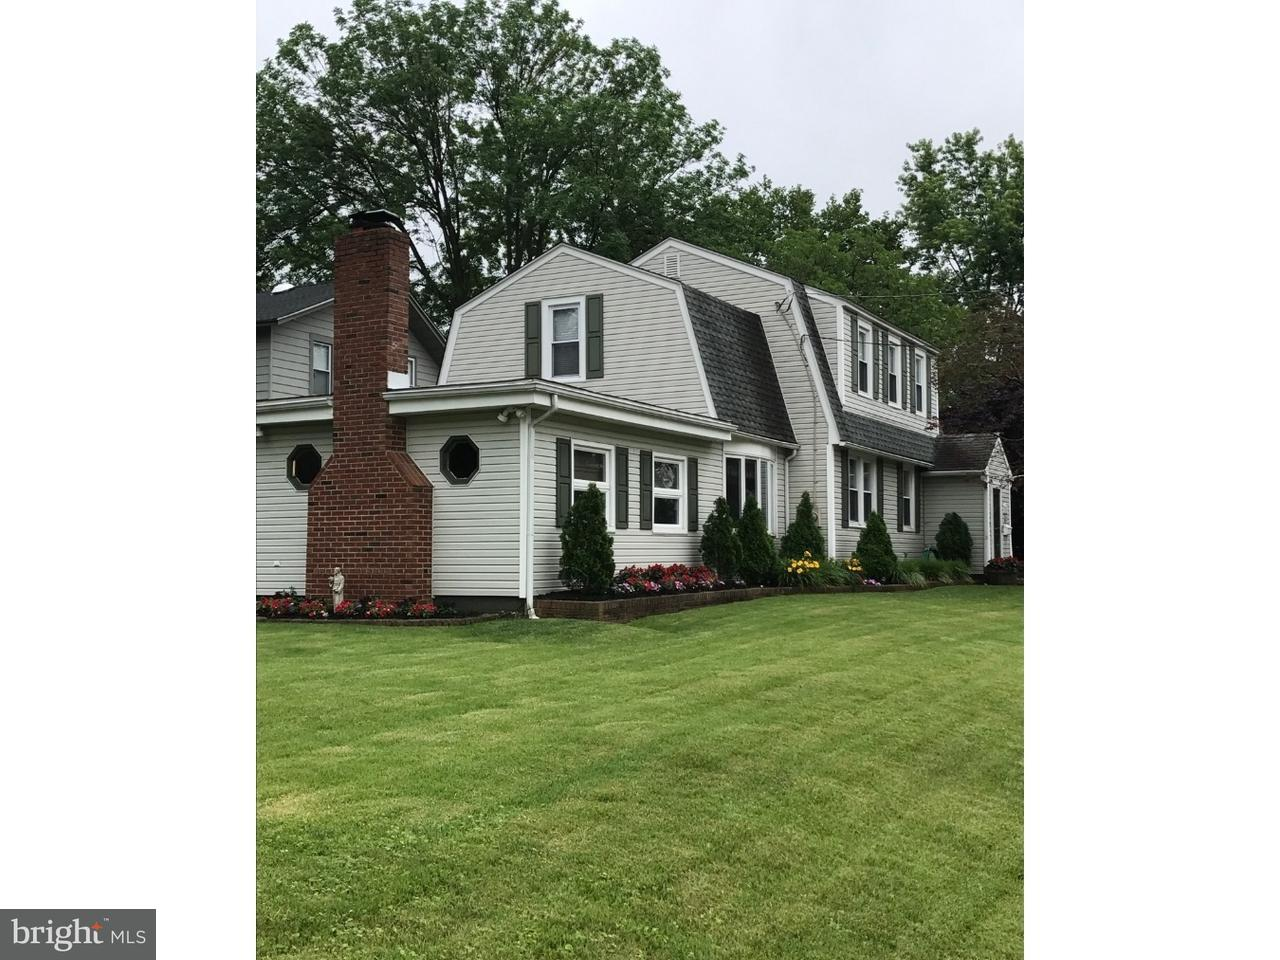 Single Family Home for Sale at 322 WALNUT Street Audubon, New Jersey 08106 United States